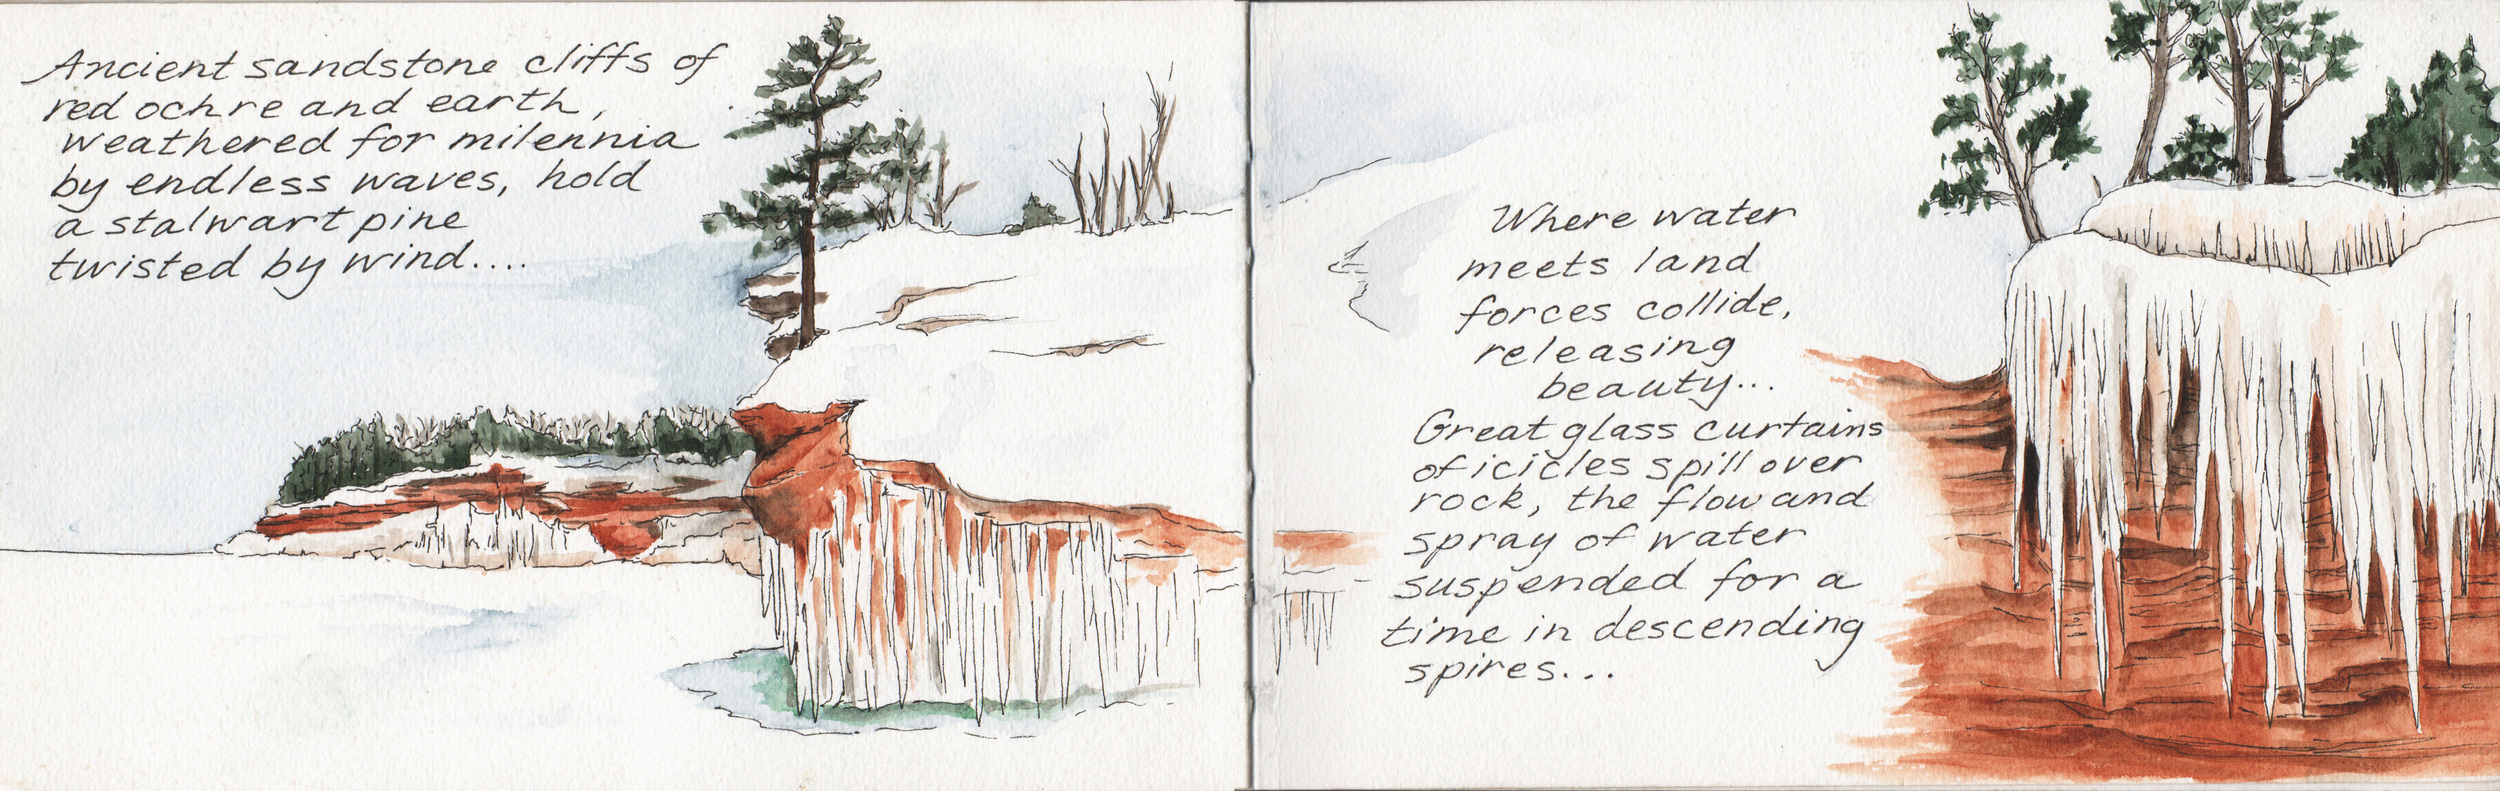 Ice Caves, an illustrated nature journal entry from February 2014